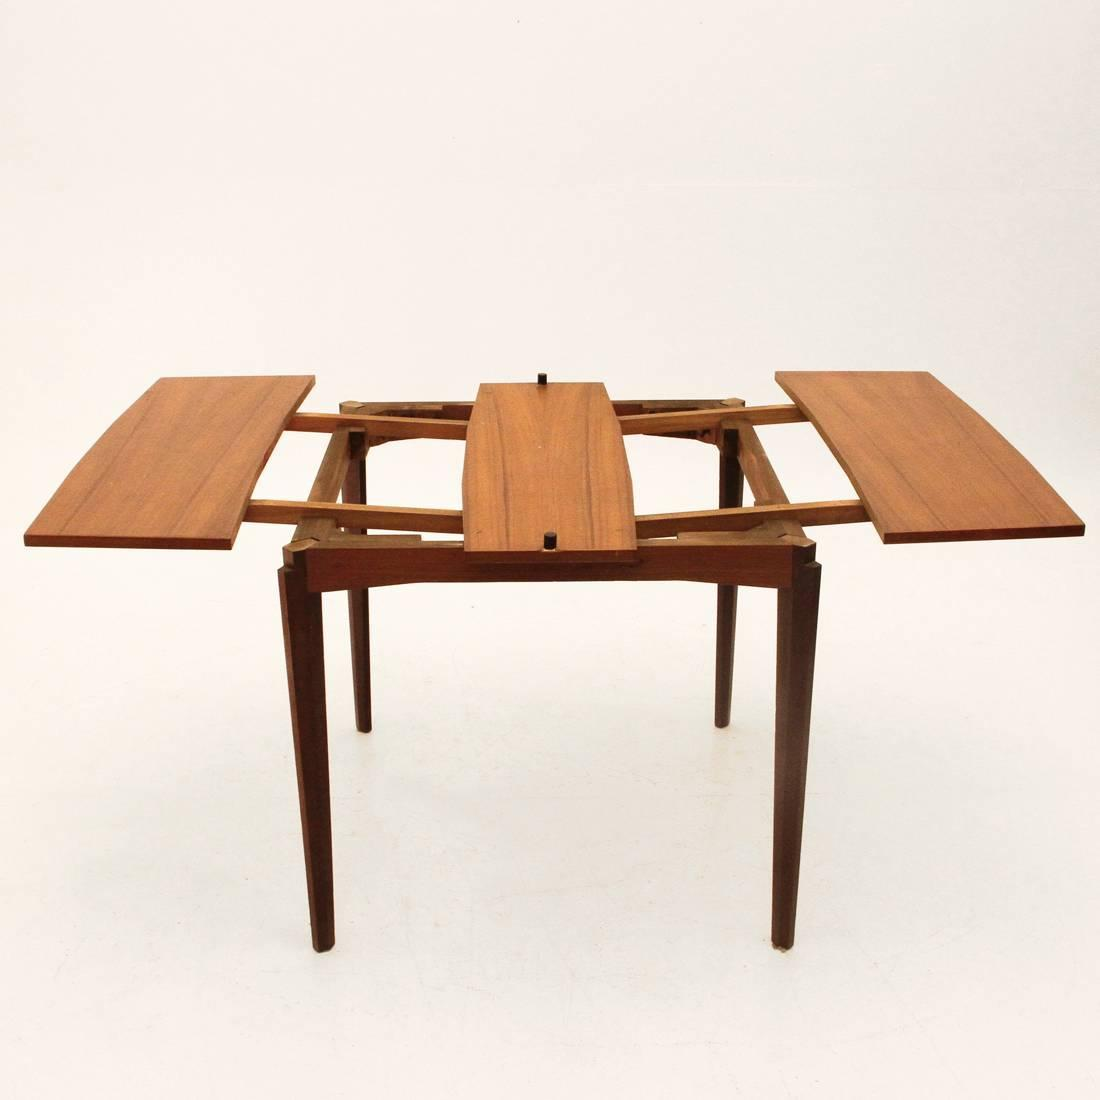 Italian Folding Dining Table 1950s For Sale at 1stdibs : MG8621z from www.1stdibs.com size 1100 x 1100 jpeg 43kB